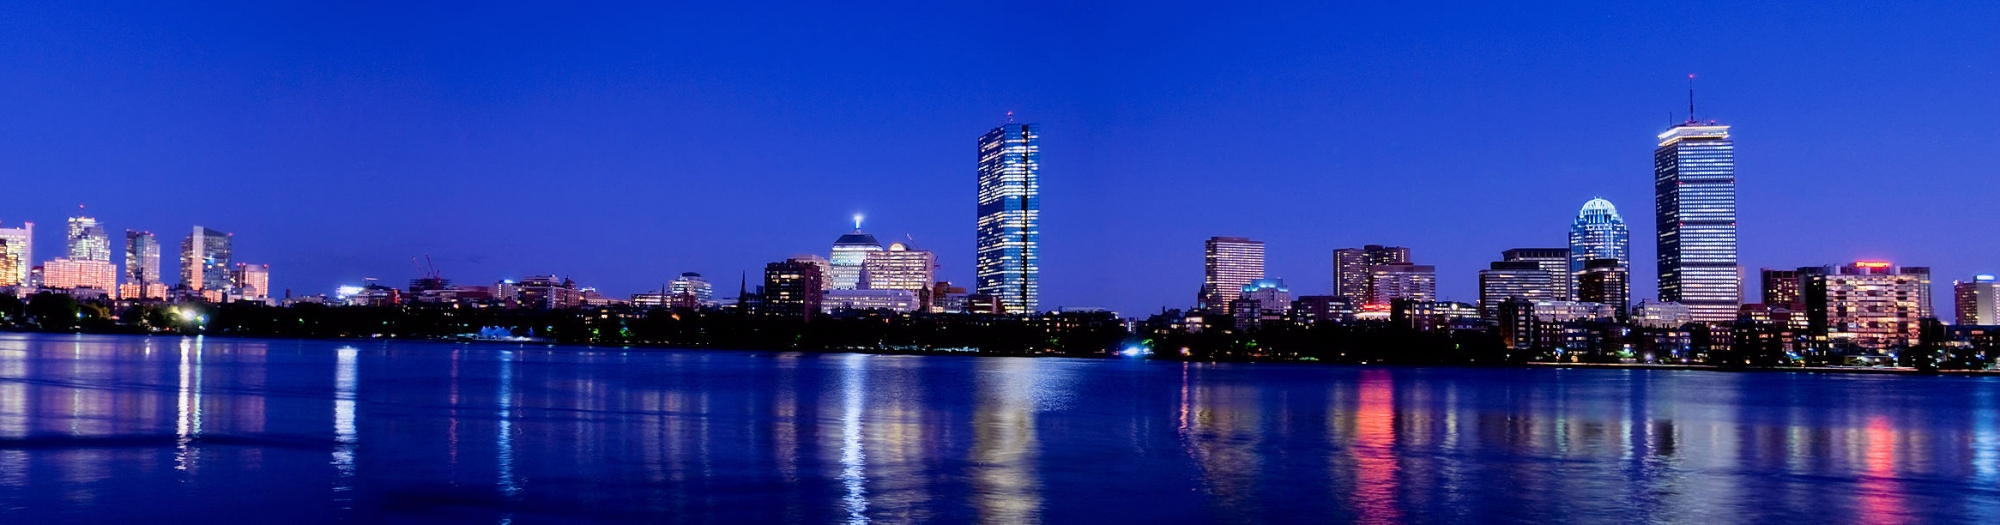 Ian's Boston Adventures blog header photo: A gorgeous shot of the Boston skyline at dusk.